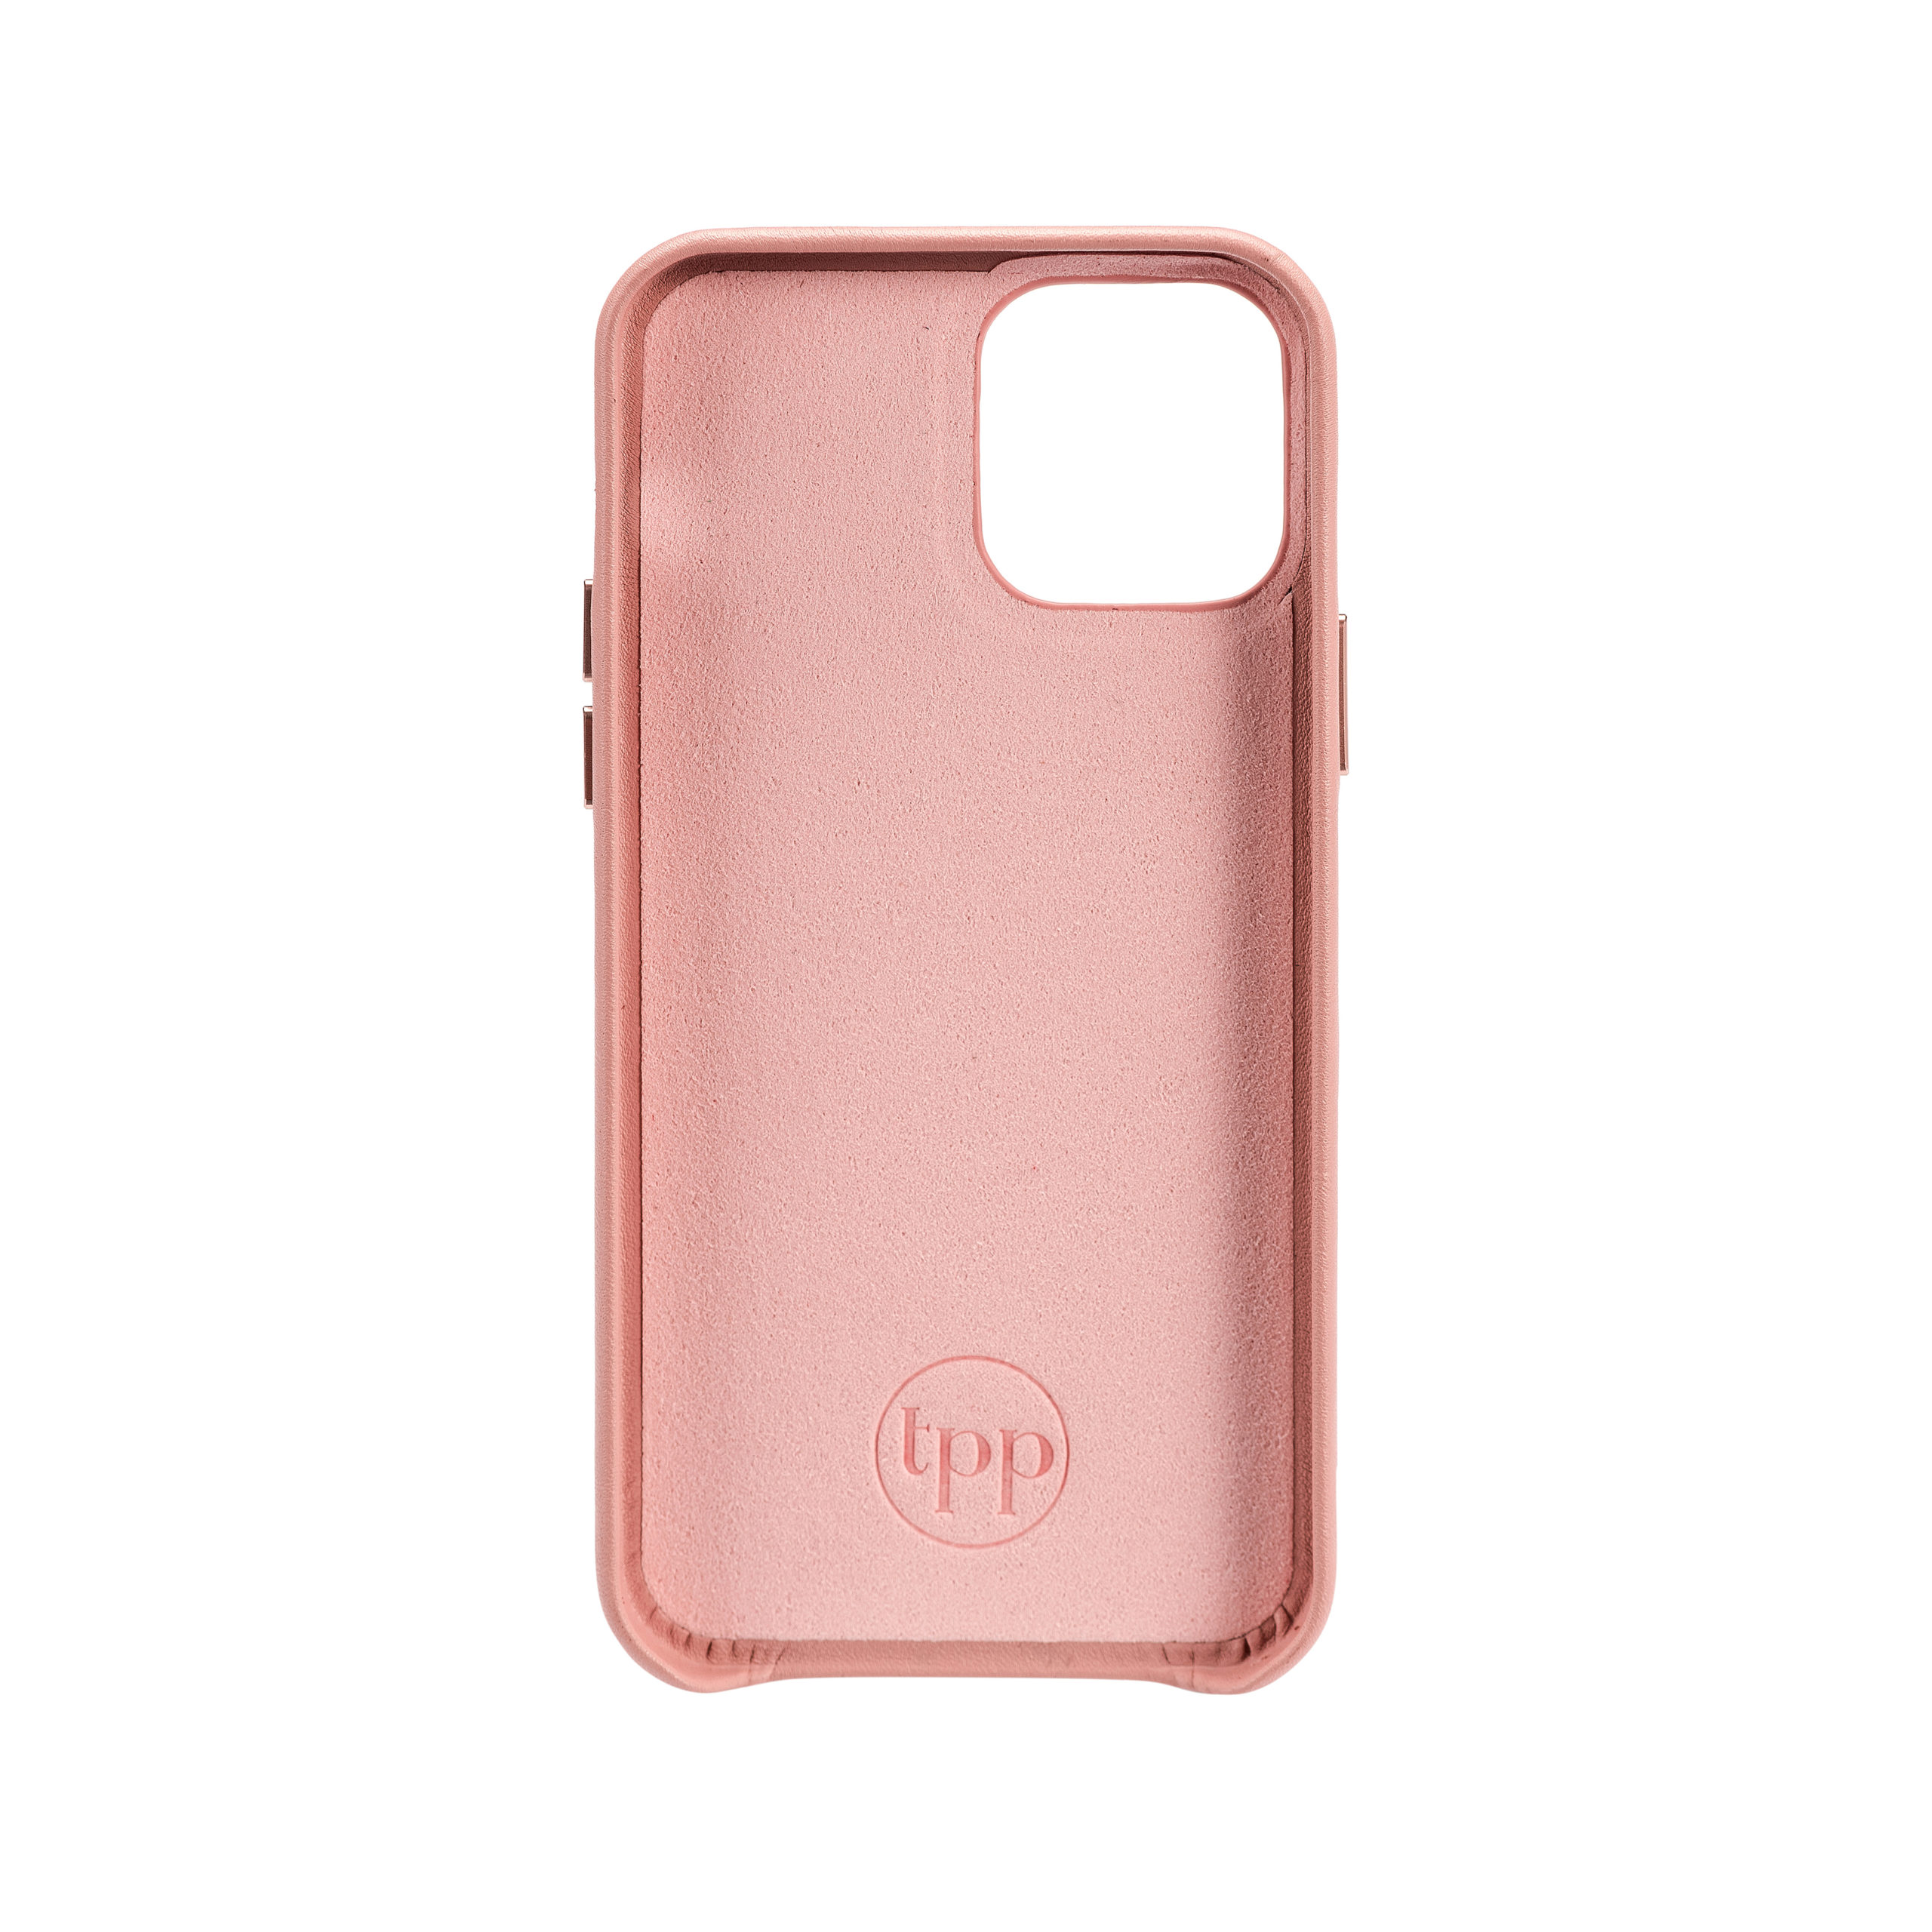 iPhone 12 Pro Max Full Wrap Case - Blush Nude - Fone Express